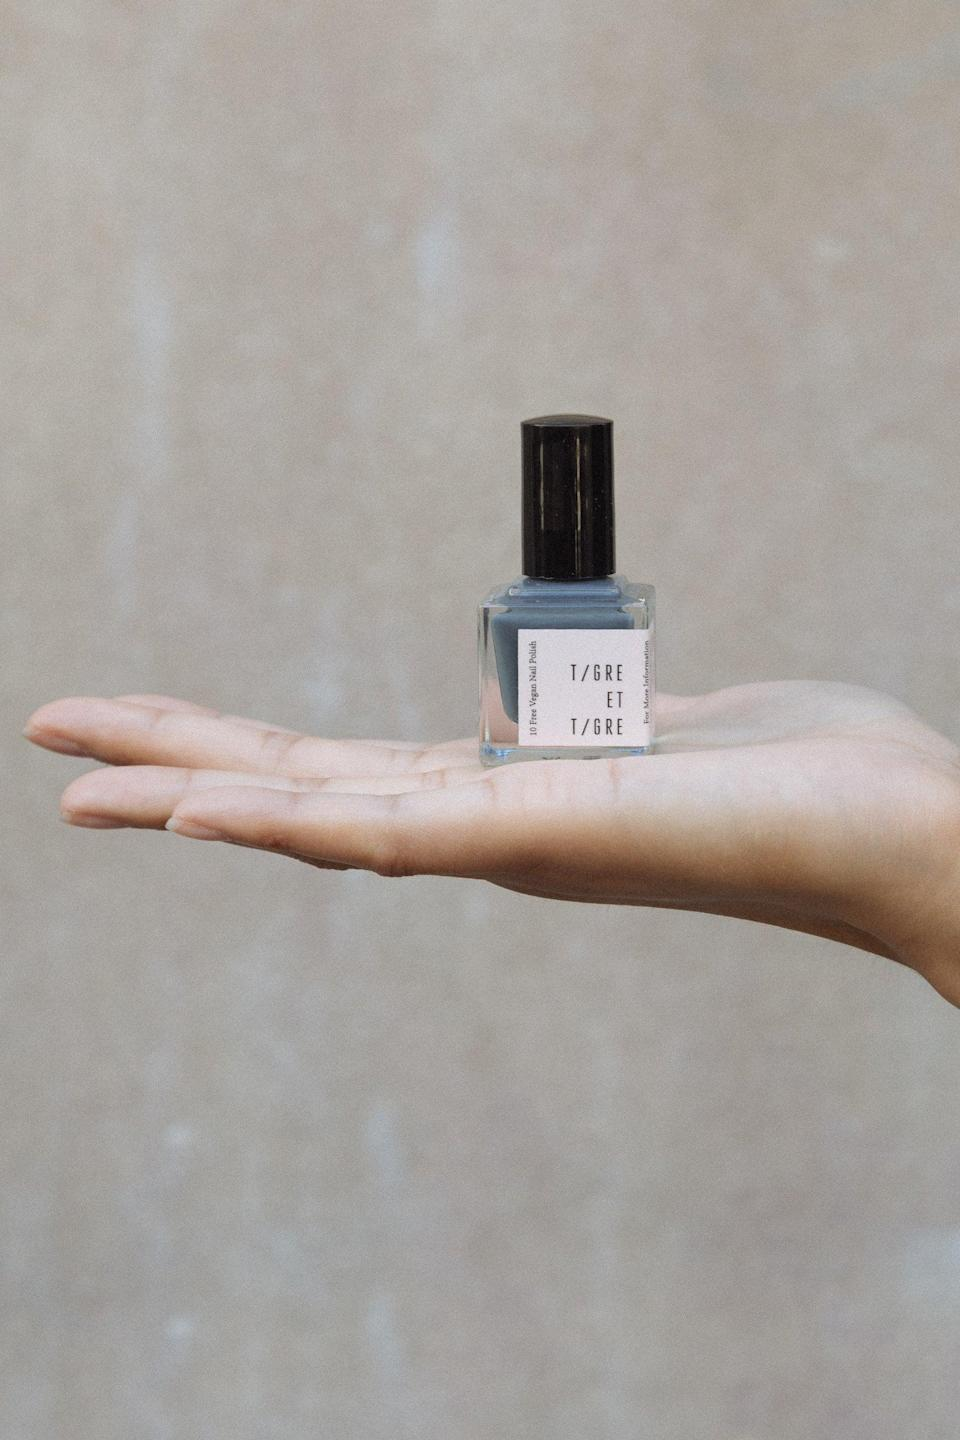 "To an untrained eye, this might look like an aesthetically pleasing bottle of $20 nail polish. But to your fashion friend, it's actually a vegan, 10-free bottle of $20 nail polish created by one of 2020's most-beloved indie brands. They'll love it. <br><br><strong>Tigre et Tigre</strong> Nail Polish | Buckets of Rain, $, available at <a href=""https://go.skimresources.com/?id=30283X879131&url=https%3A%2F%2Ftigreettigre.com%2Fcollections%2Fnail-polish%2Fproducts%2Fnail-polish-buckets-of-rain"" rel=""nofollow noopener"" target=""_blank"" data-ylk=""slk:Tigre et Tigre"" class=""link rapid-noclick-resp"">Tigre et Tigre</a>"